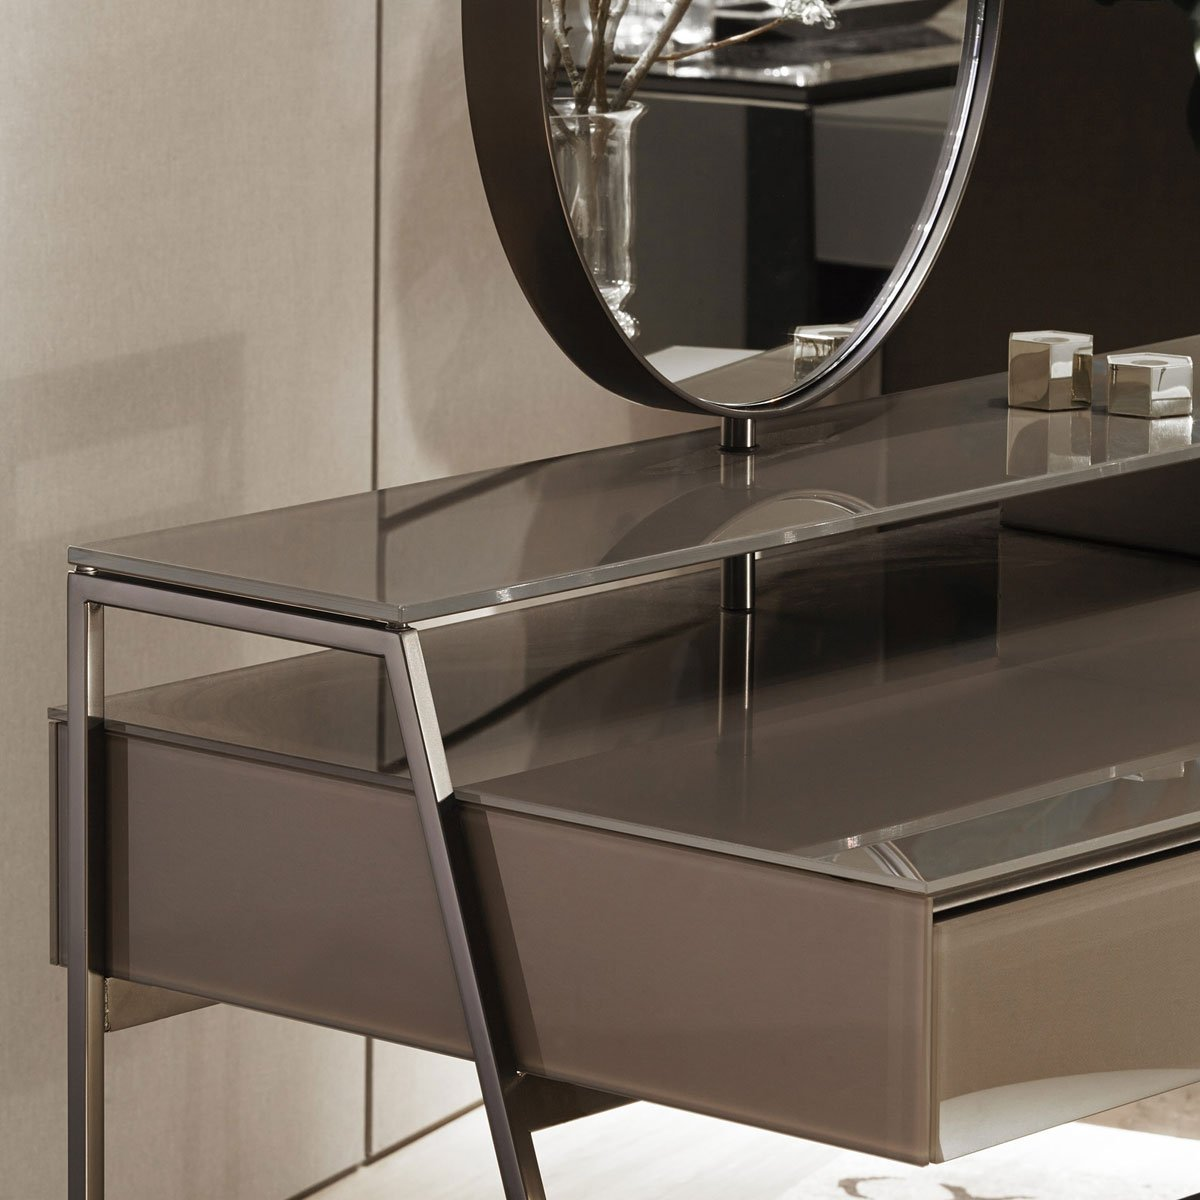 Venere glass desk with mirror by gallotti radice klarity glass furniture Mirror glass furniture